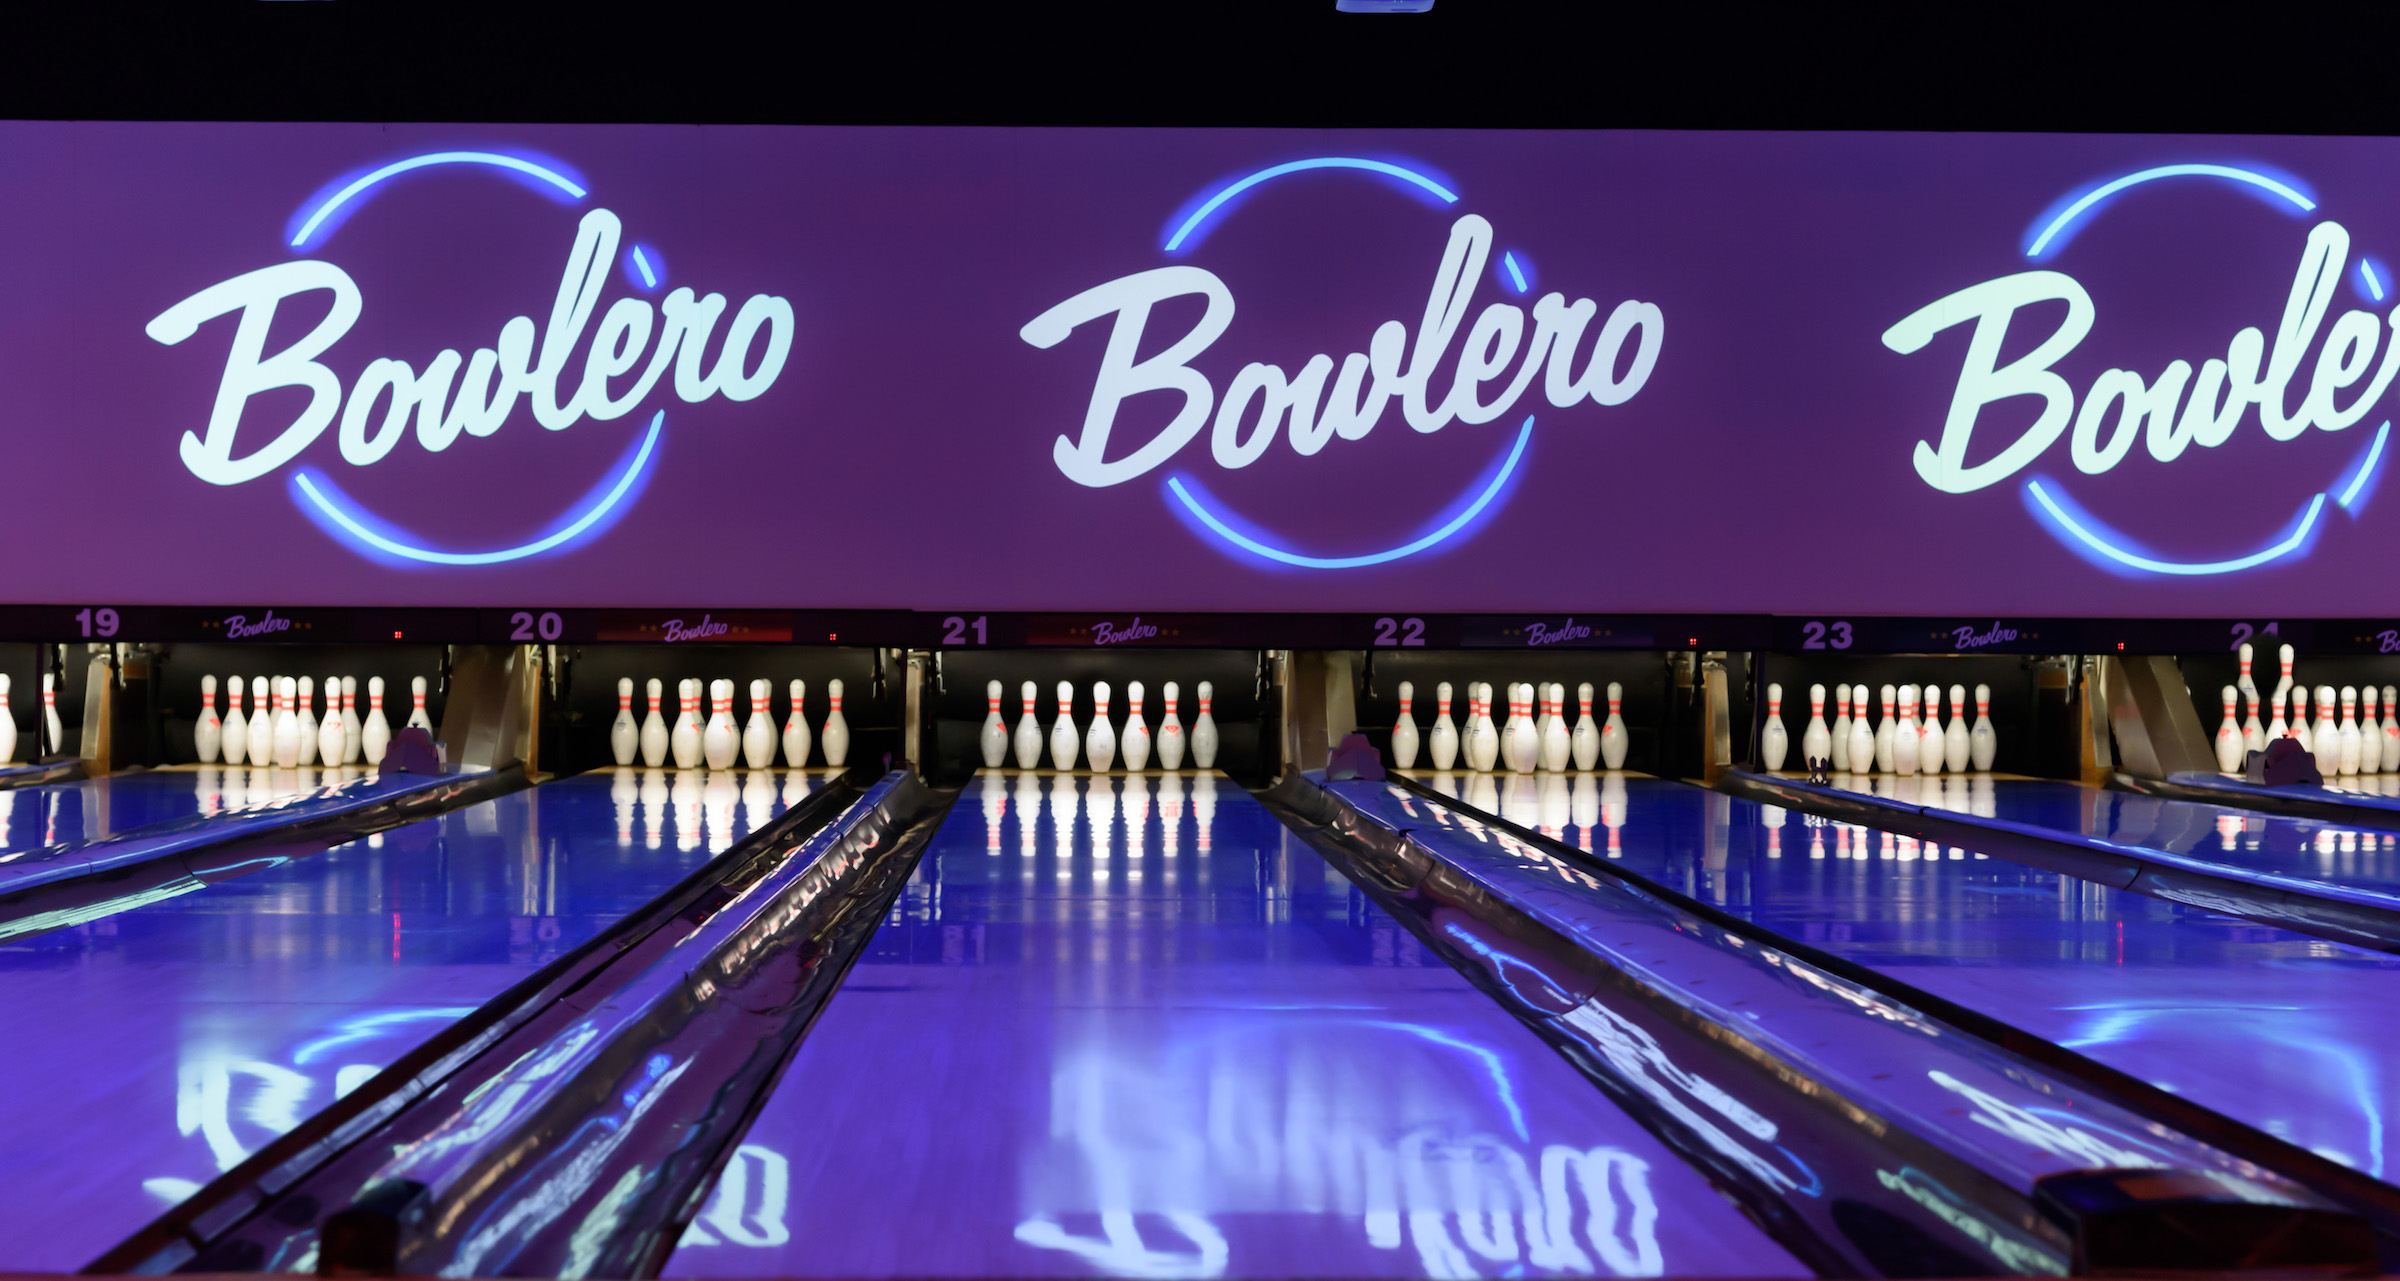 Bowlero Jupiter - Say goodbye to 2018 and hello to the most striking New Year's celebration yet.Bowlero's party packages feature bowling, champagne and sparkling cider toasts, and a lineup of exceptional eats from their signature menus.